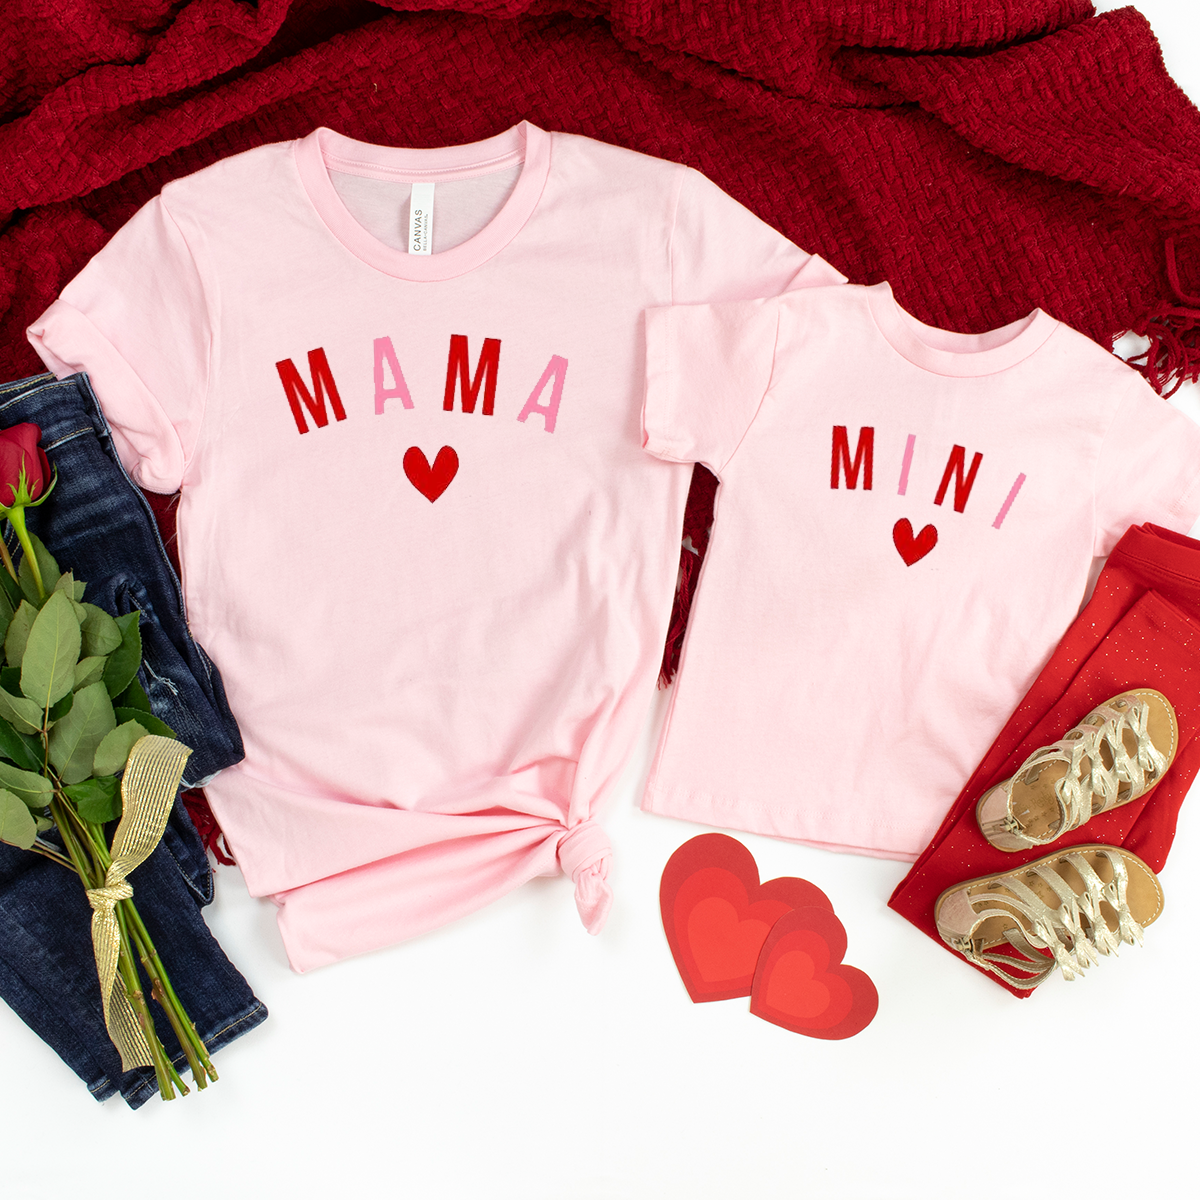 Mama Mama's Mini Twinning - Valentine's Heart Edition. Mum & Daughter(s) T-Shirt